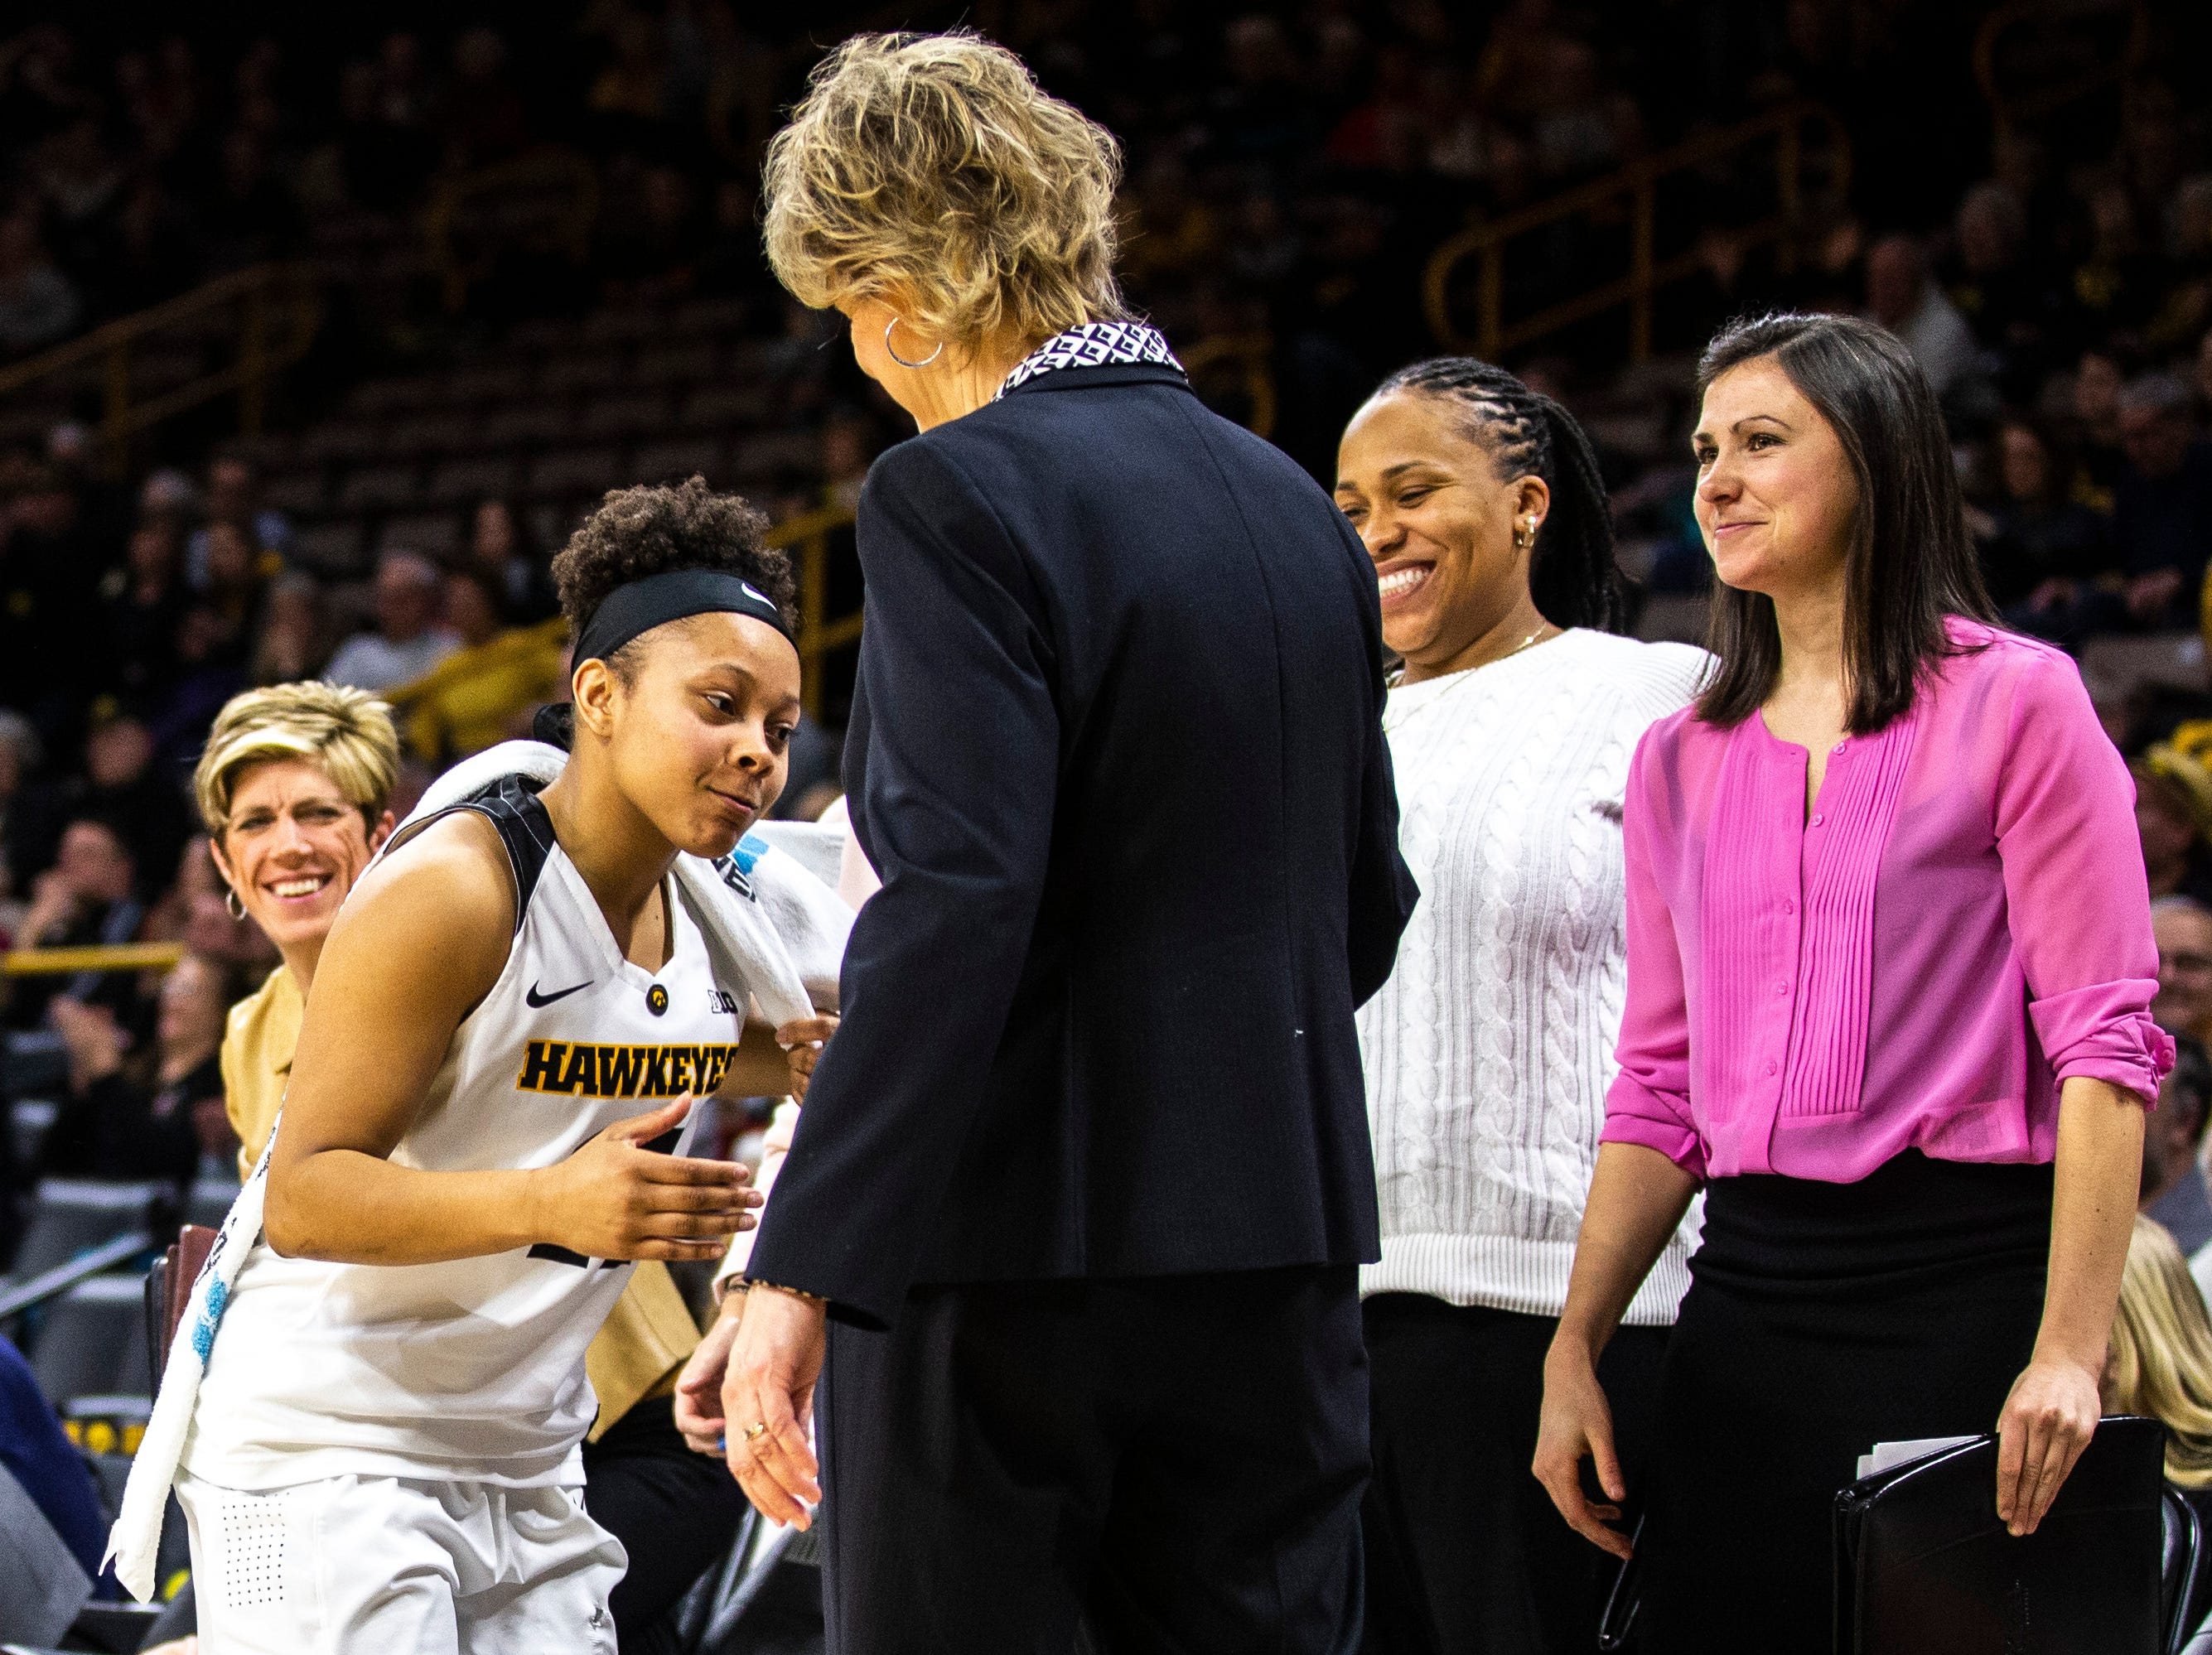 Iowa guard Tania Davis (11) shakes hands with Iowa head coach Lisa Bluder during a NCAA Big Ten Conference women's basketball game on Thursday, Feb. 14, 2019 at Carver-Hawkeye Arena in Iowa City, Iowa.